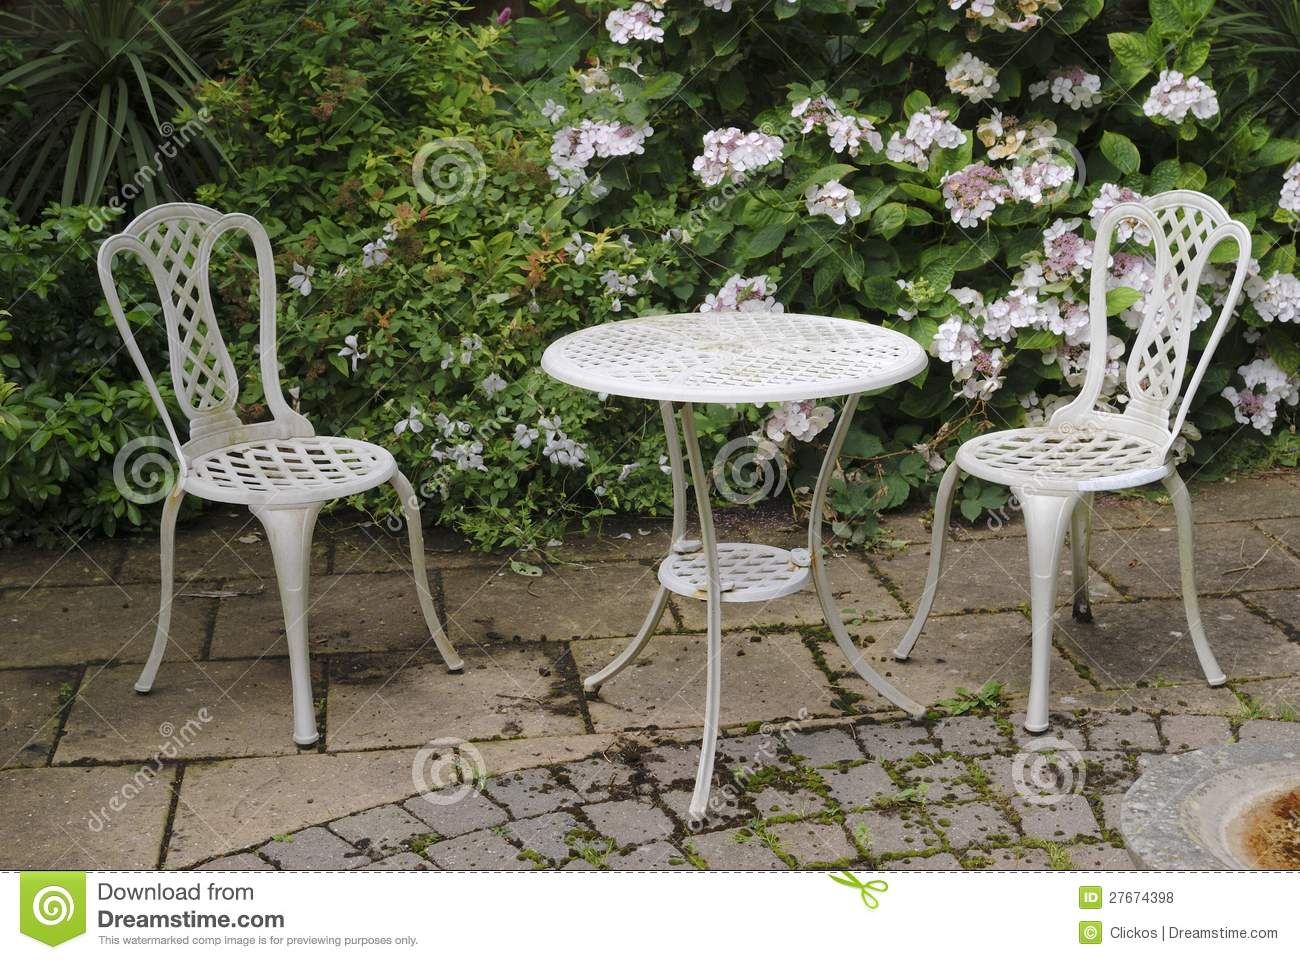 Garden table and chairs stock photo. Image of ironwork - 12